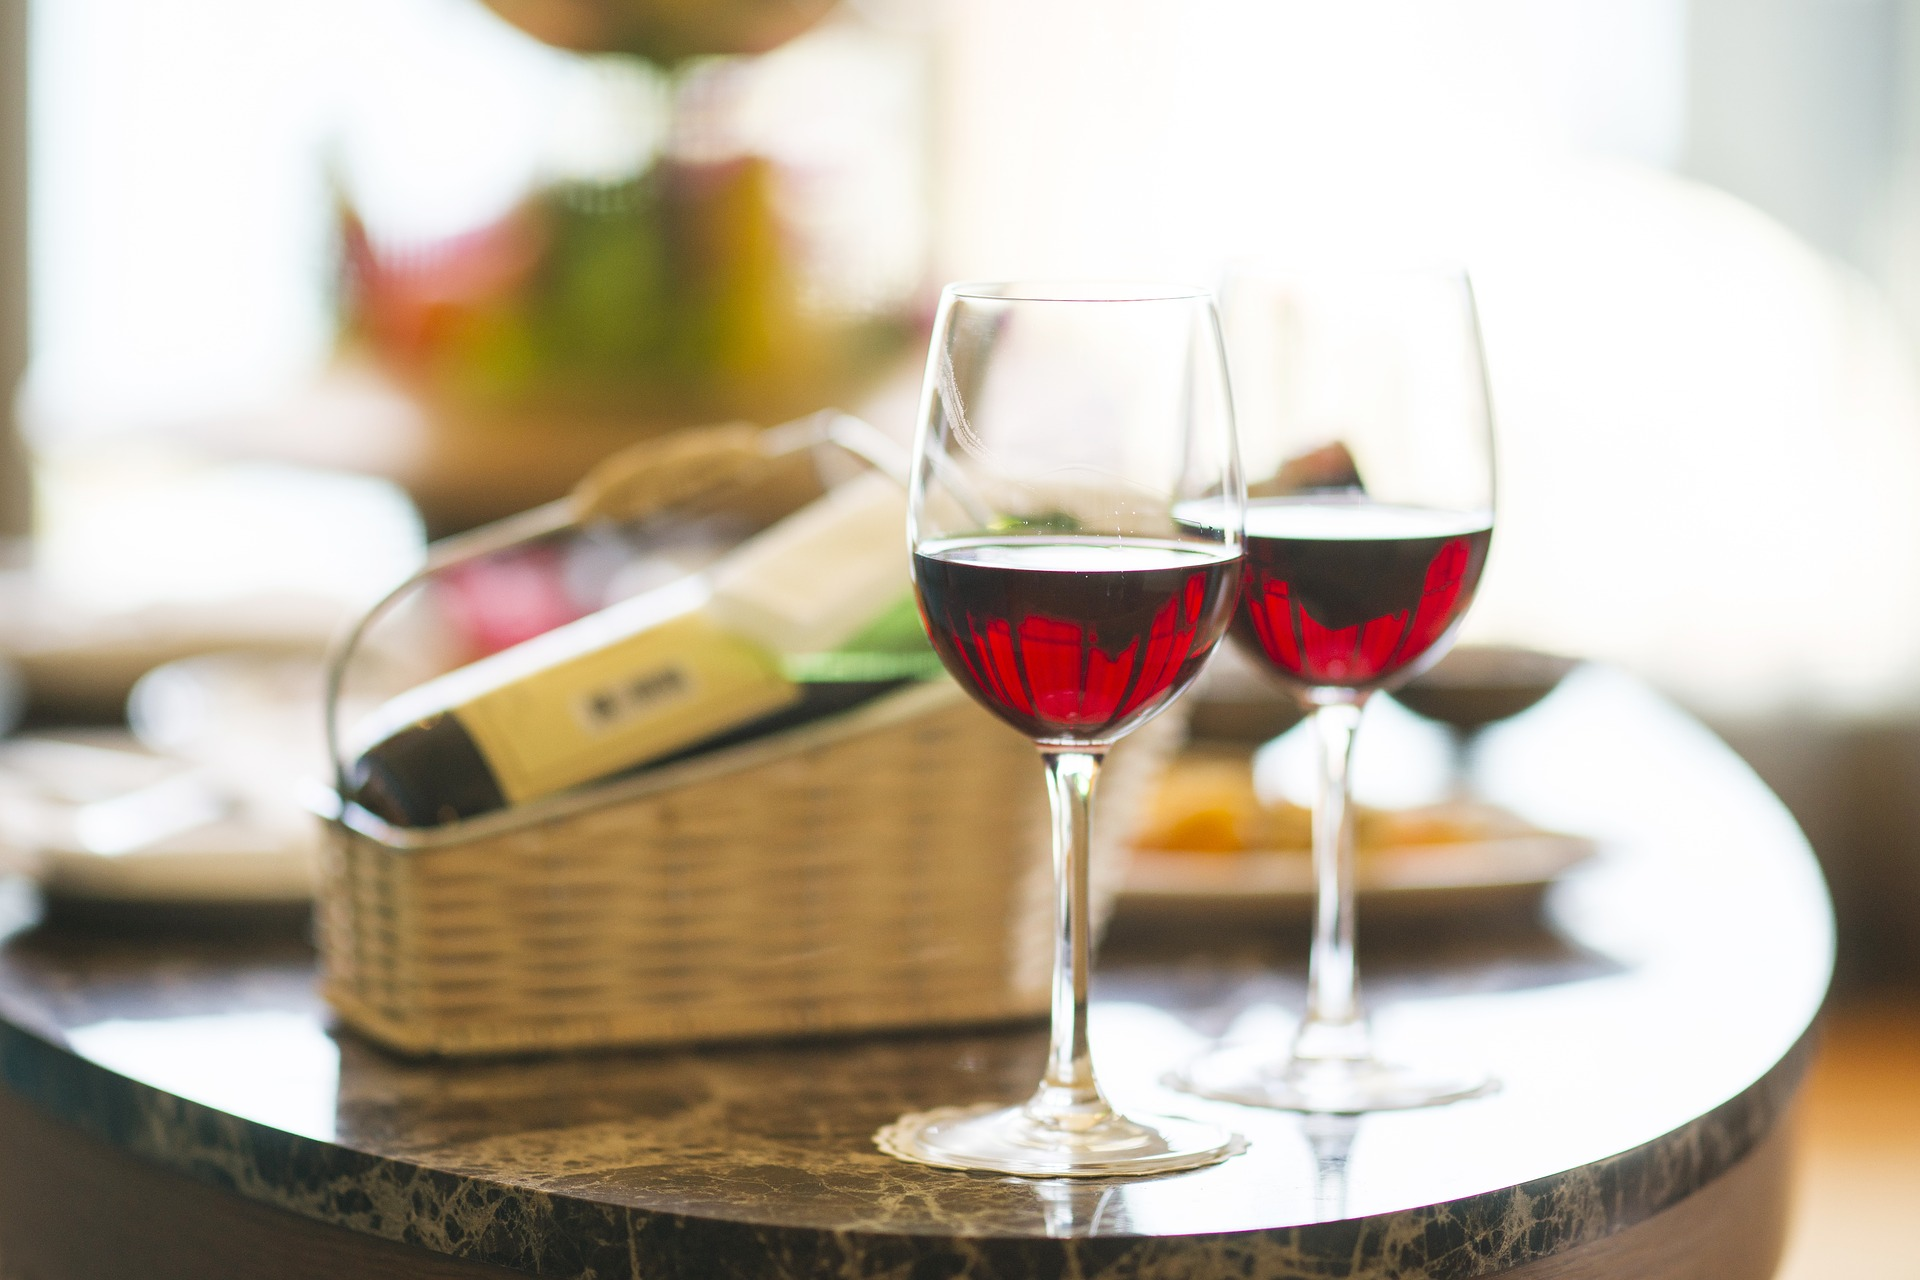 INDULGE - We will enjoy a special wine tasting experience